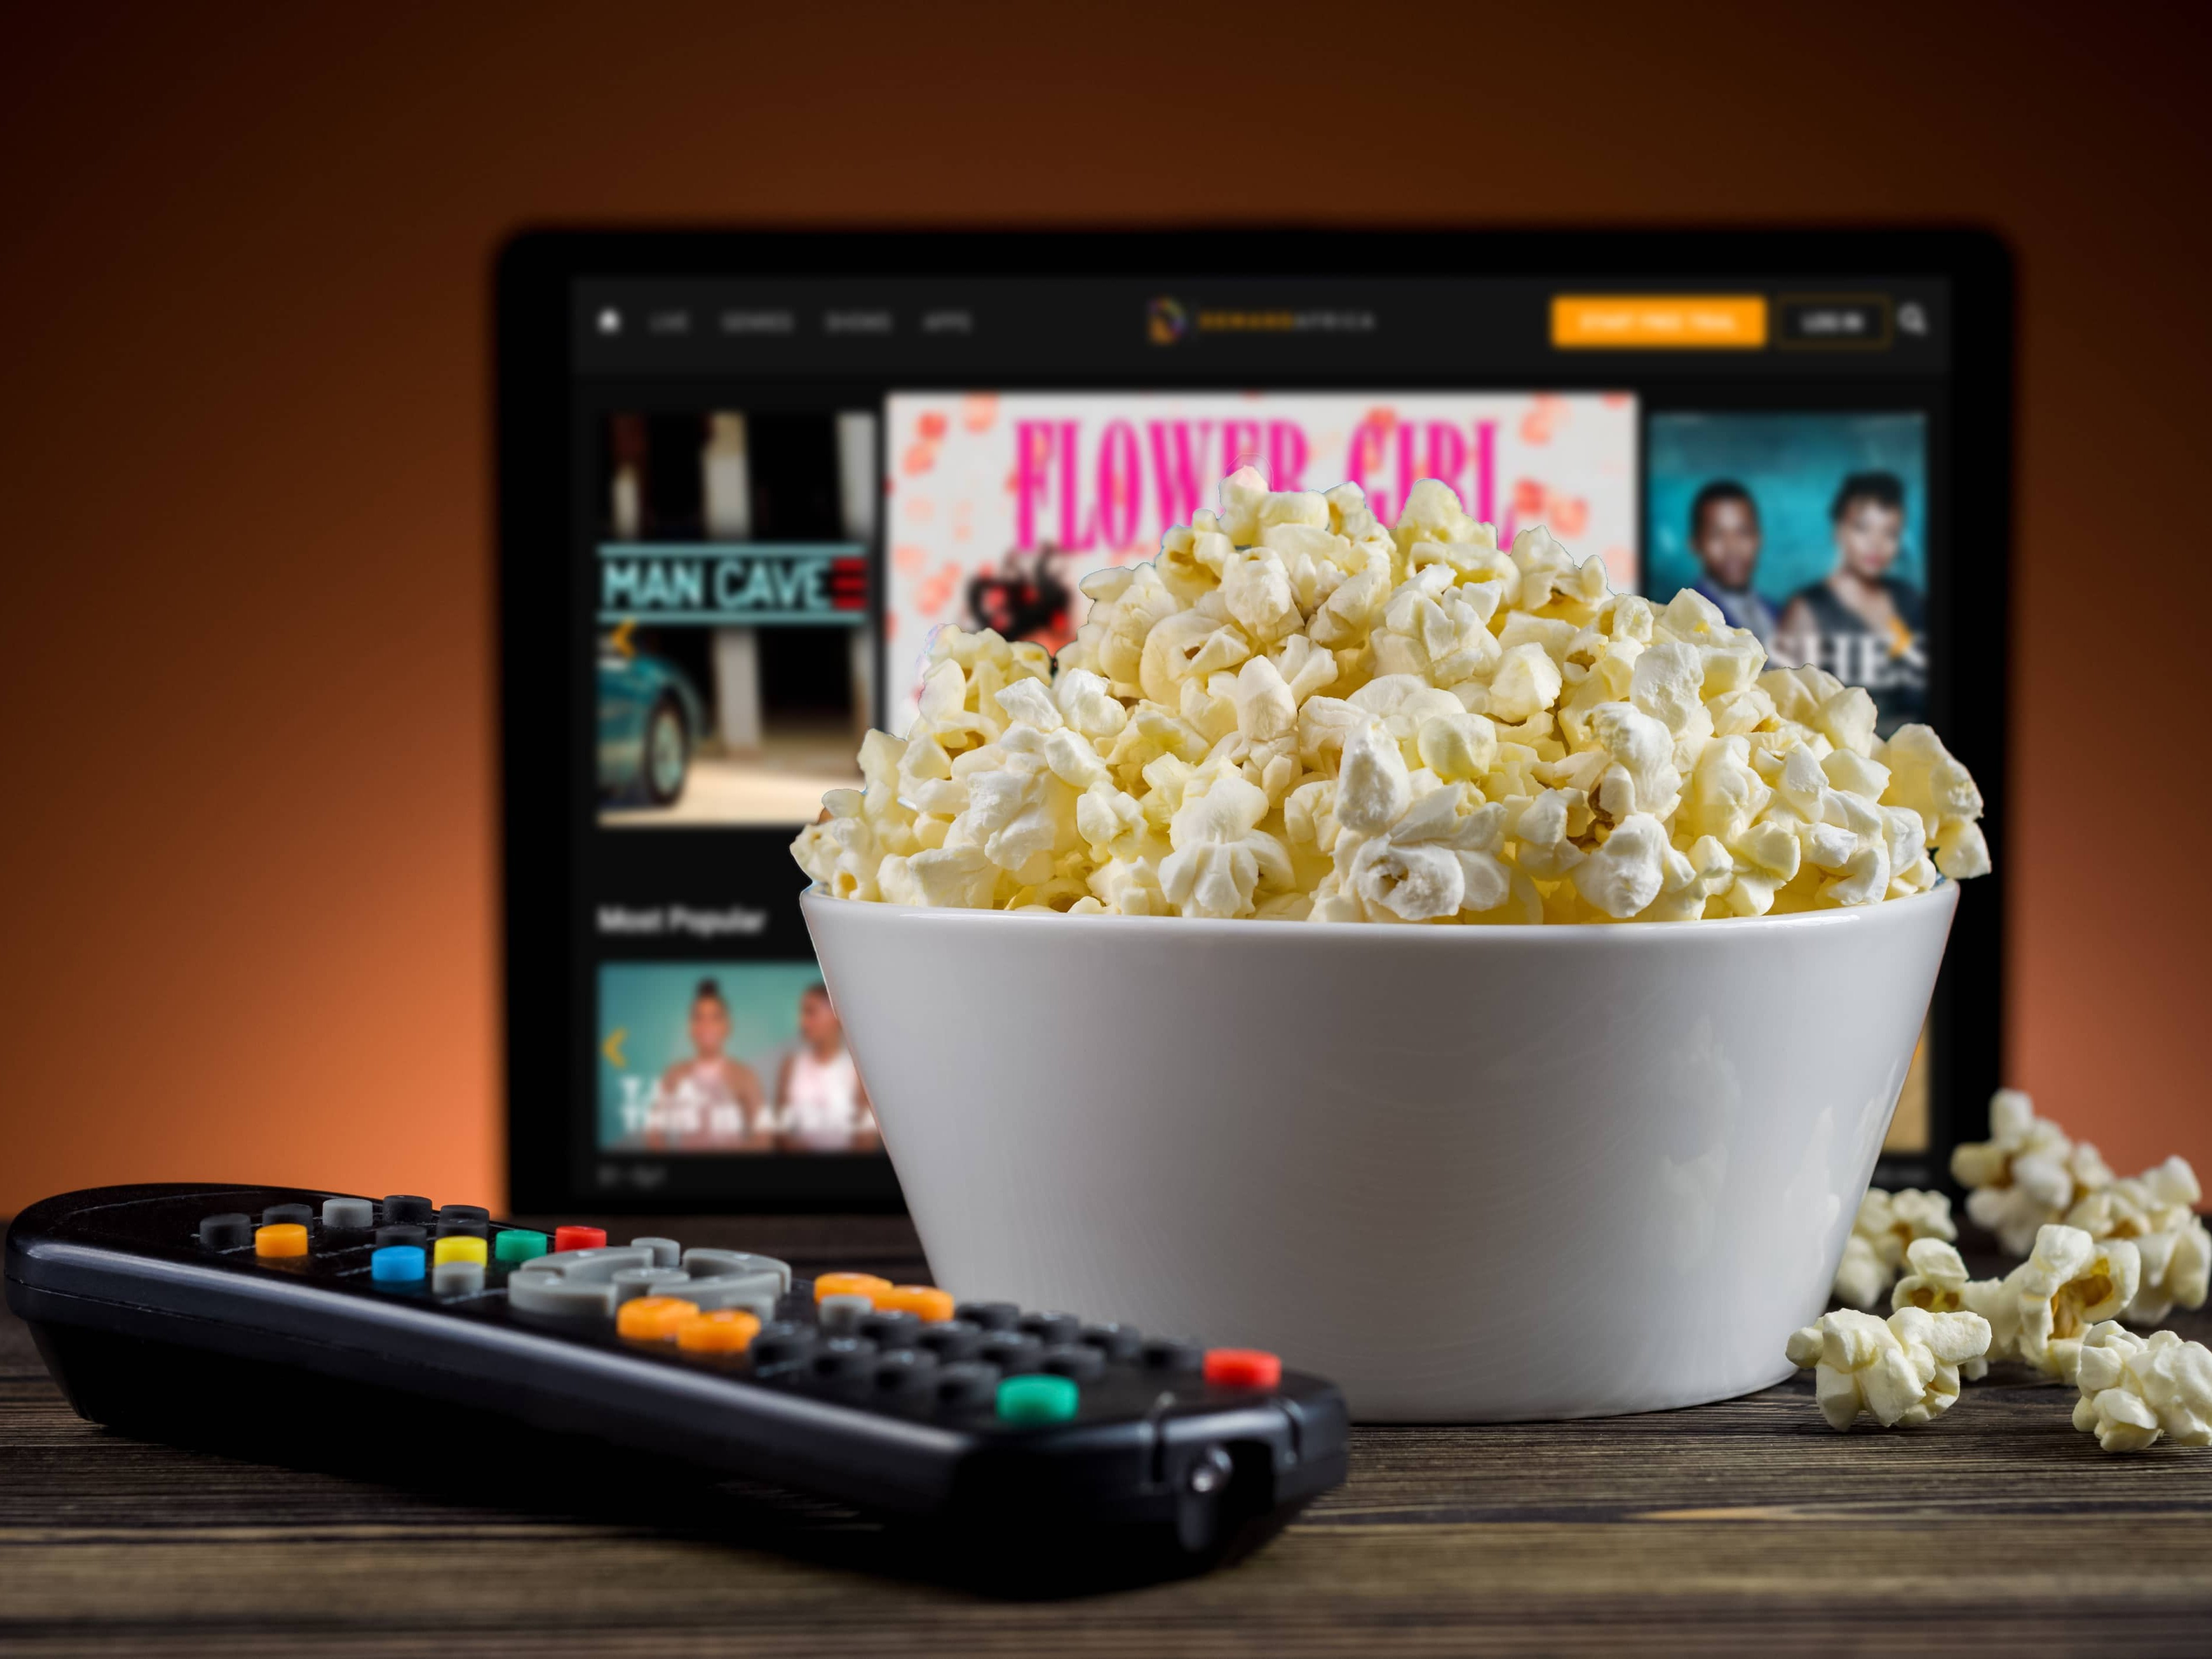 Most Popular Shows and Movies on Demand Africa